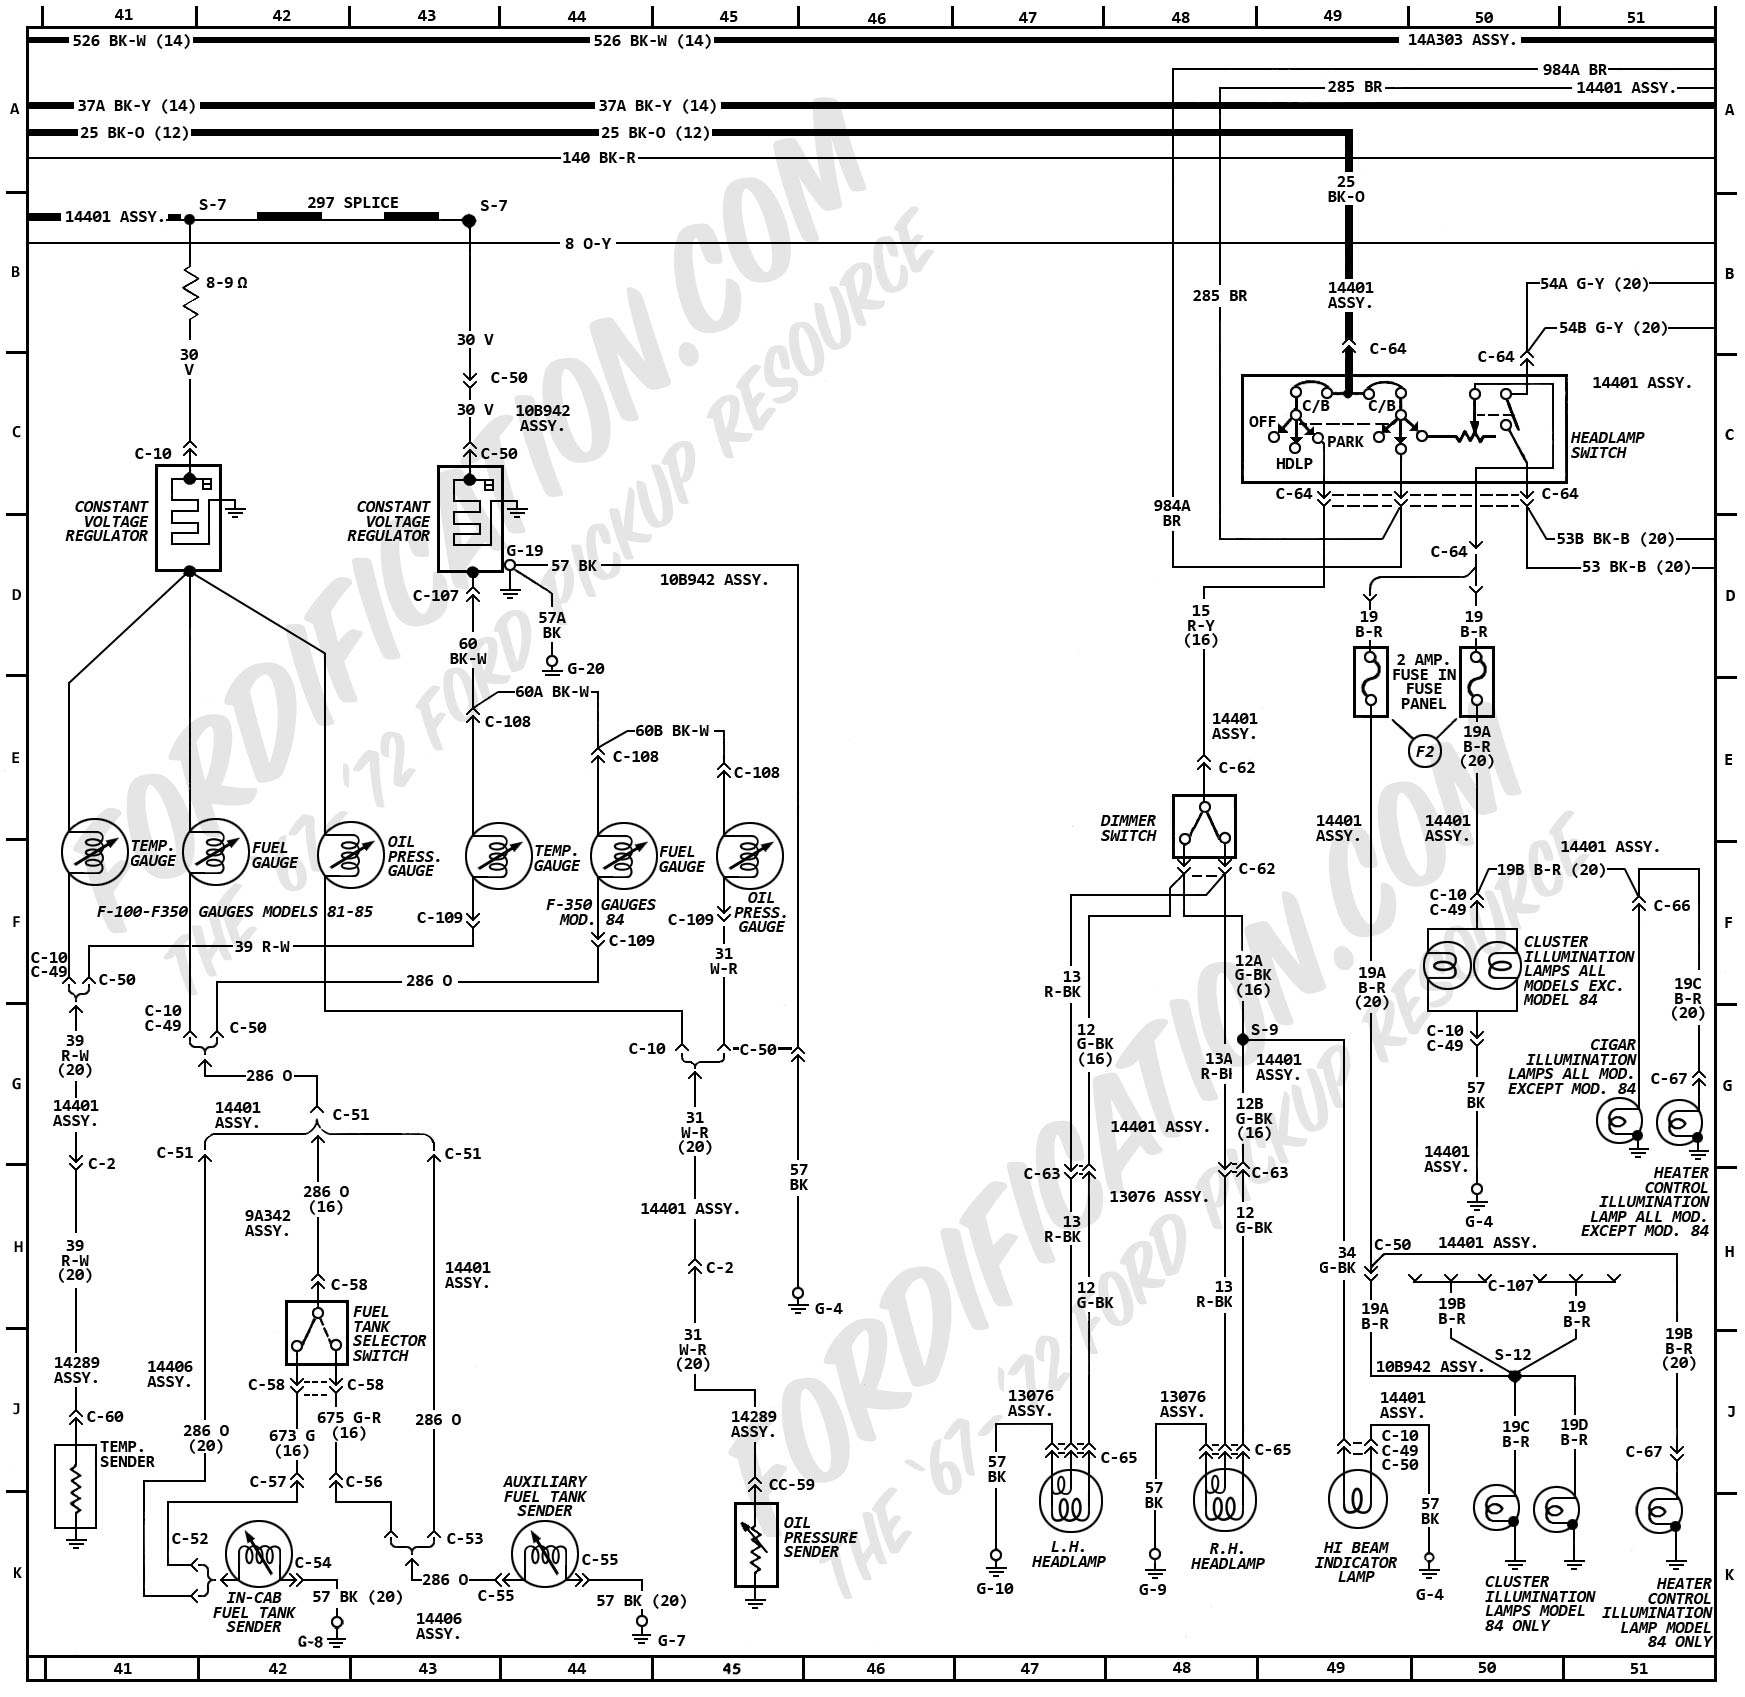 1996 ford f700 wiring schematic 1996 ford l8000 wiring schematic